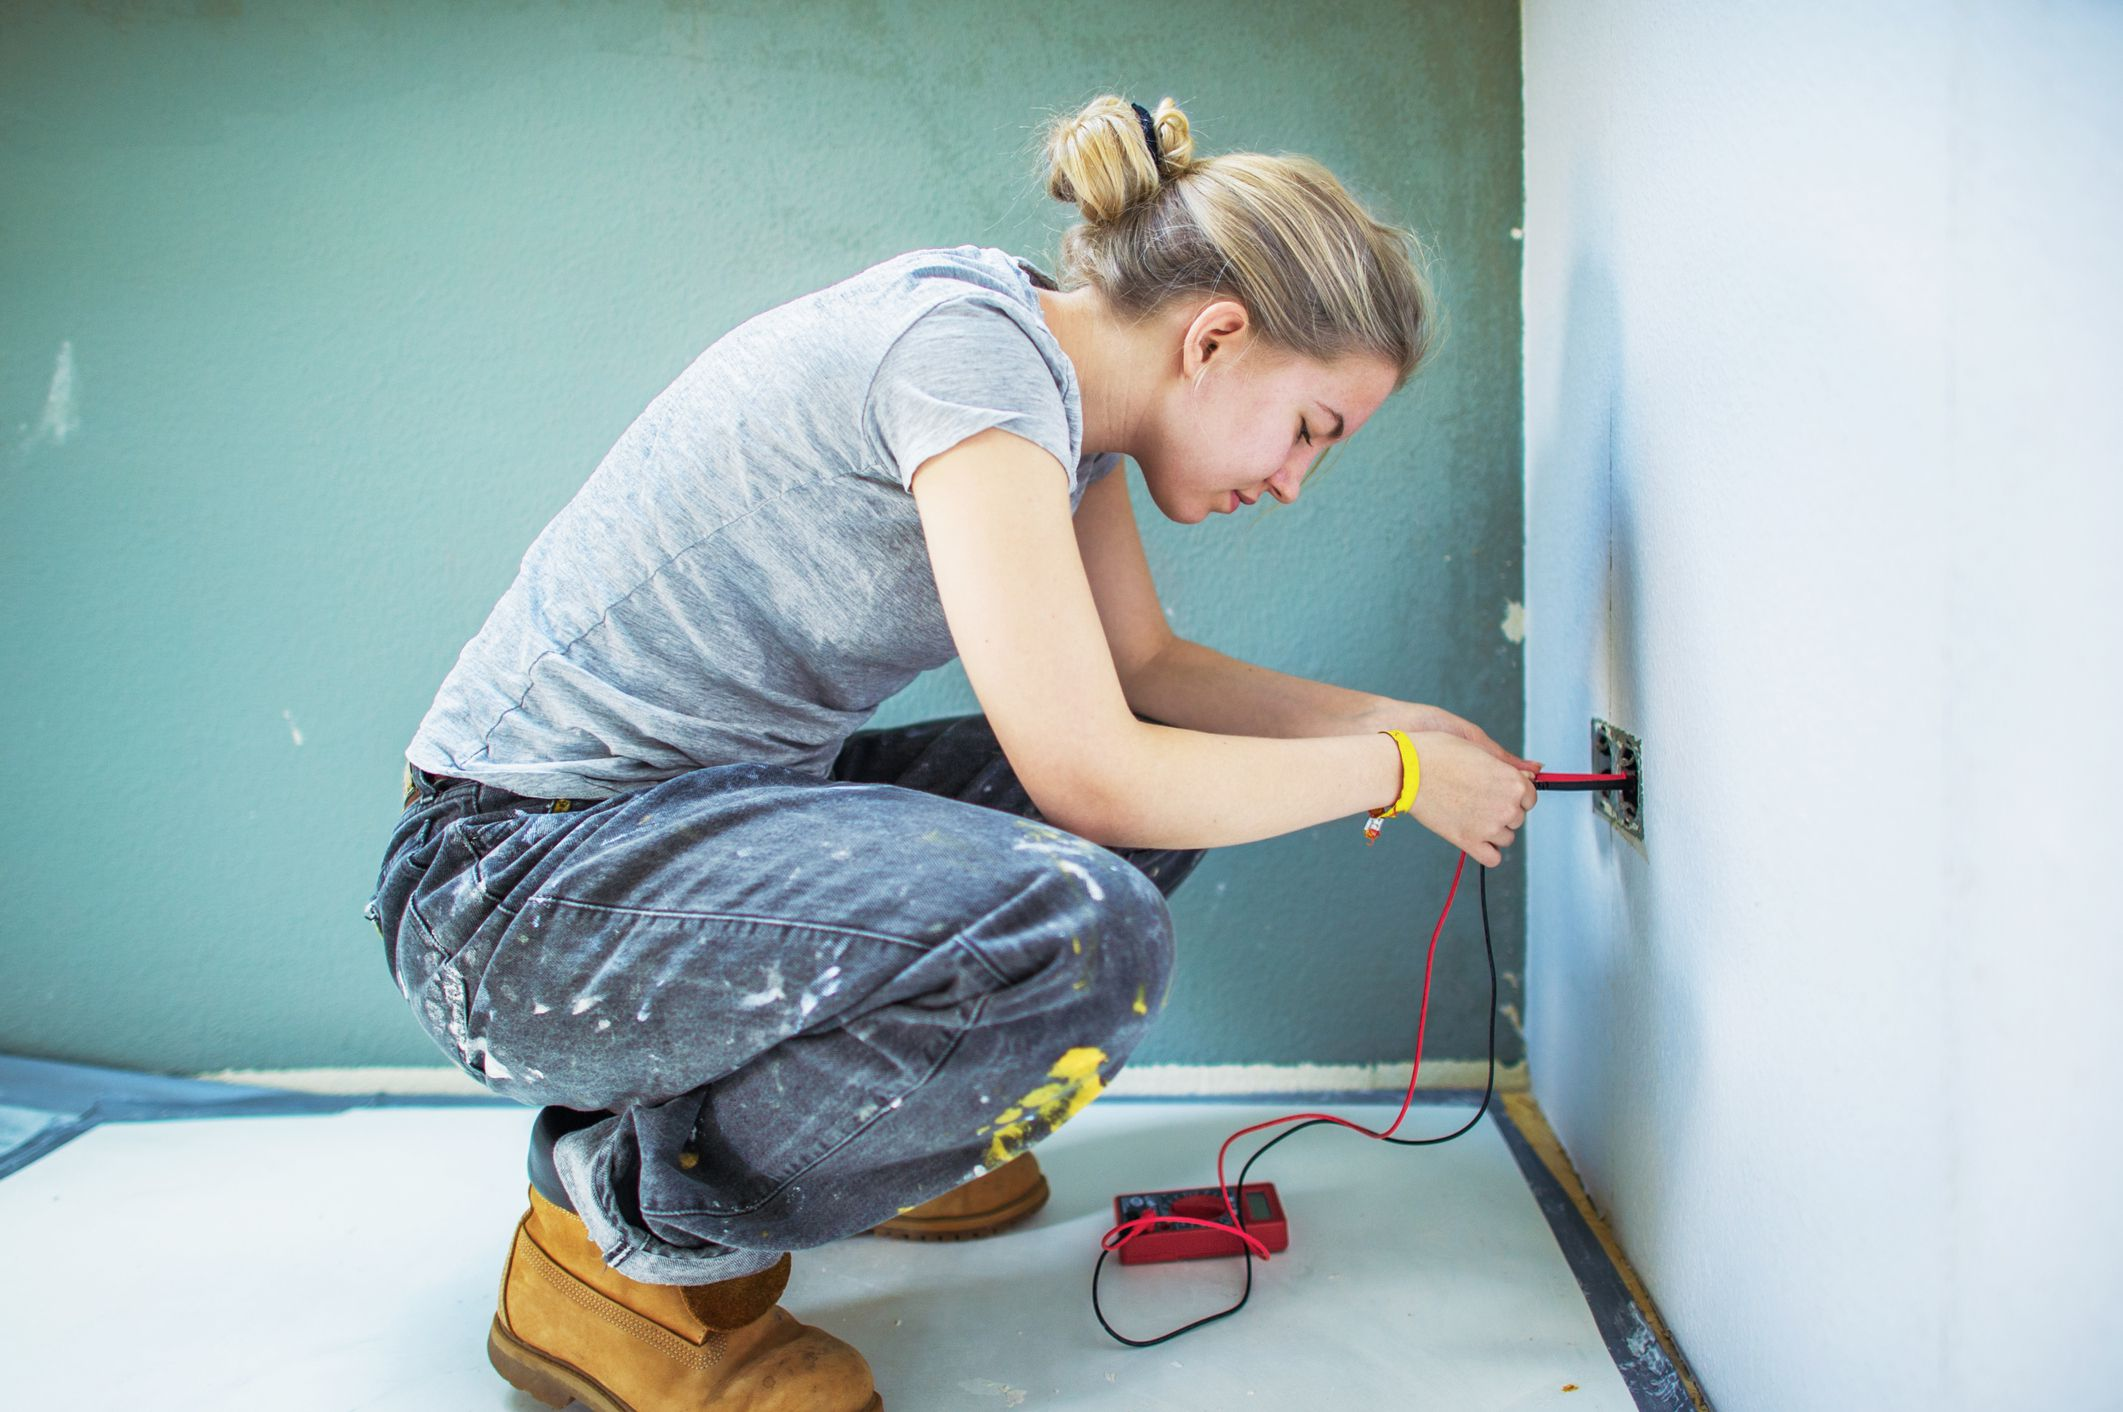 Learn How to Install Electrical Outlets Yourself